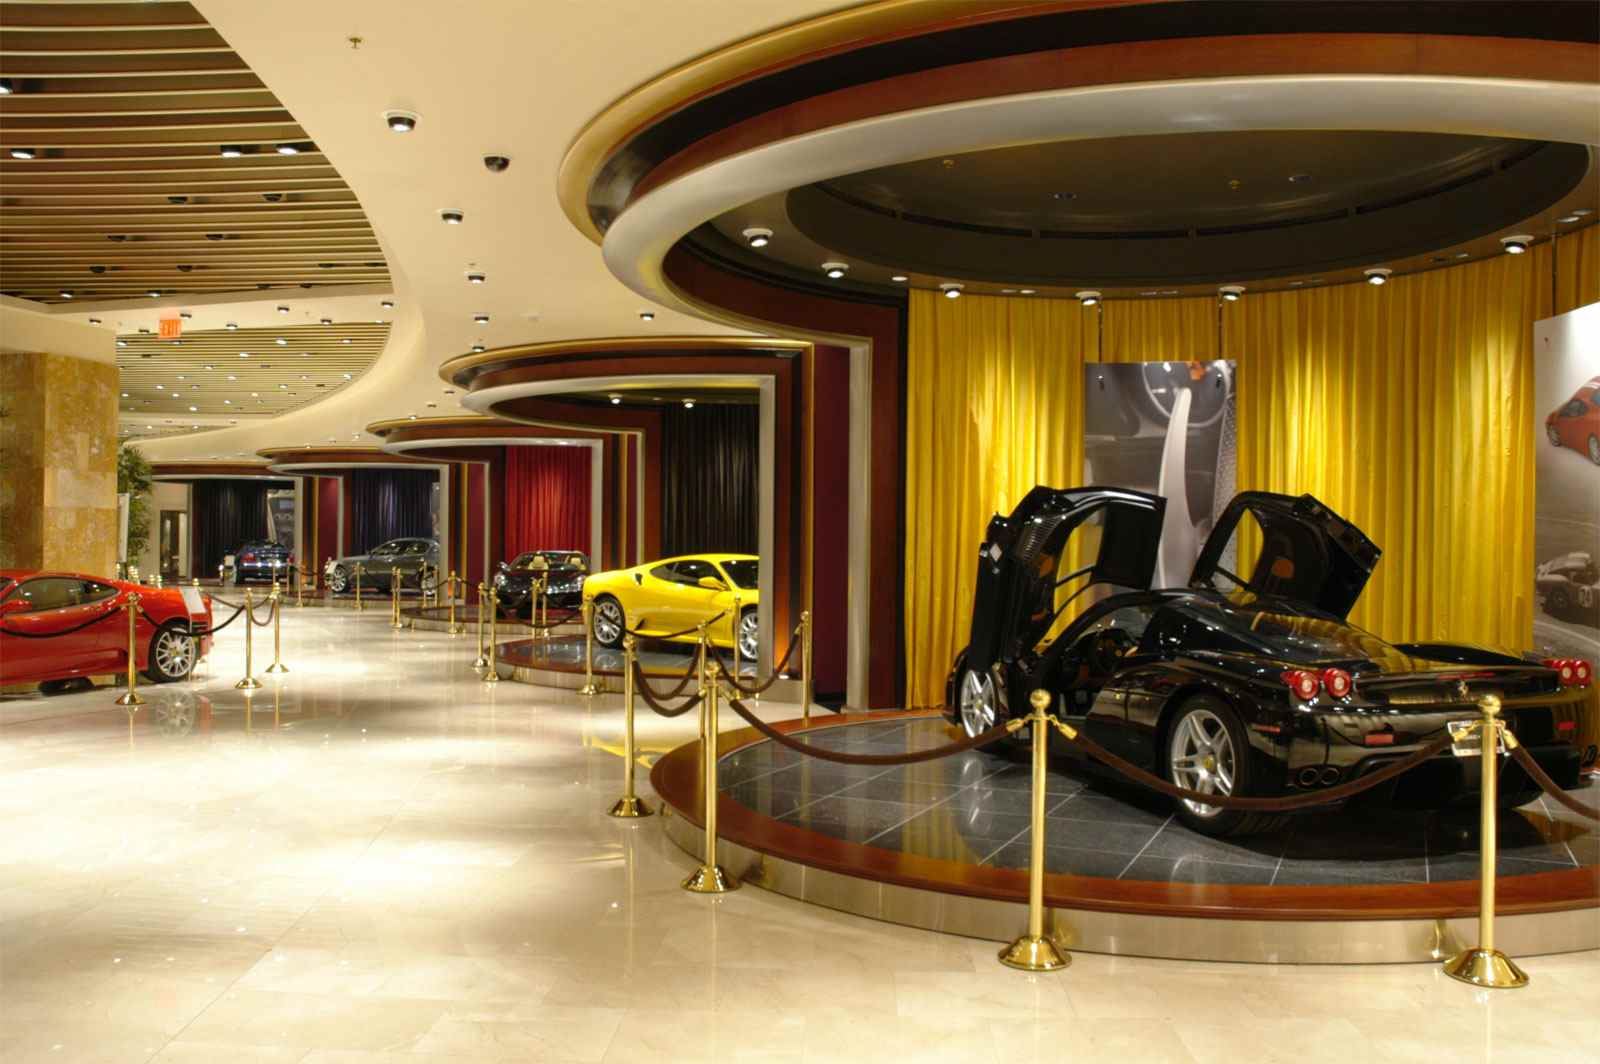 Wynn/Penske Ferrari Showcase as it opened in the Wynn Resort in Las Vegas.